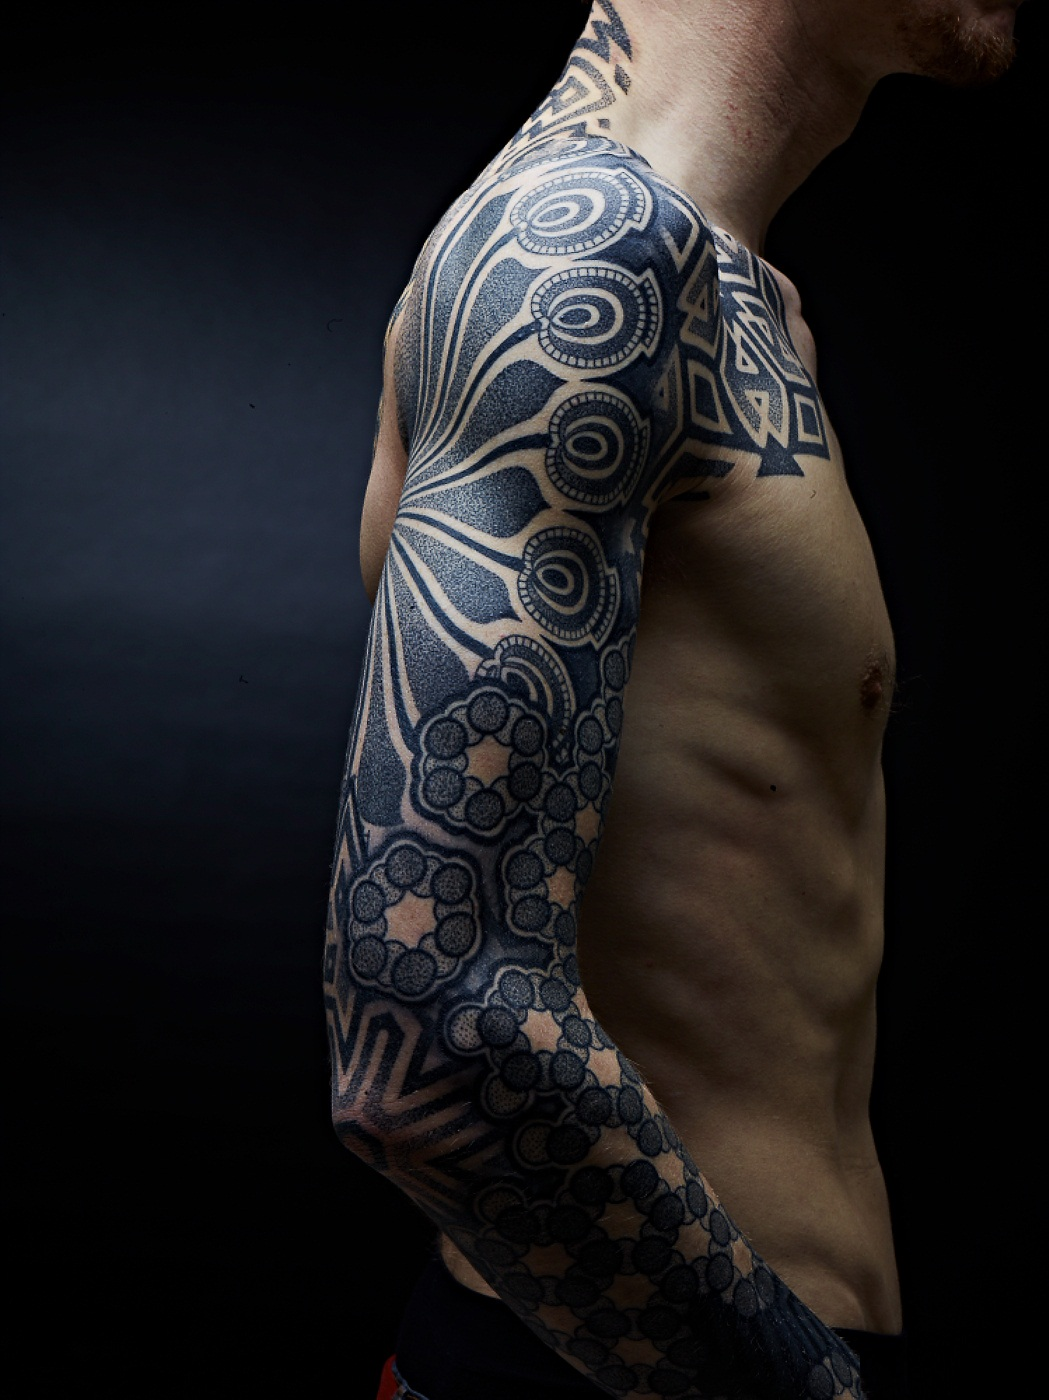 Best tattoo designs for men in 2016 the xerxes for Male tattoo ideas